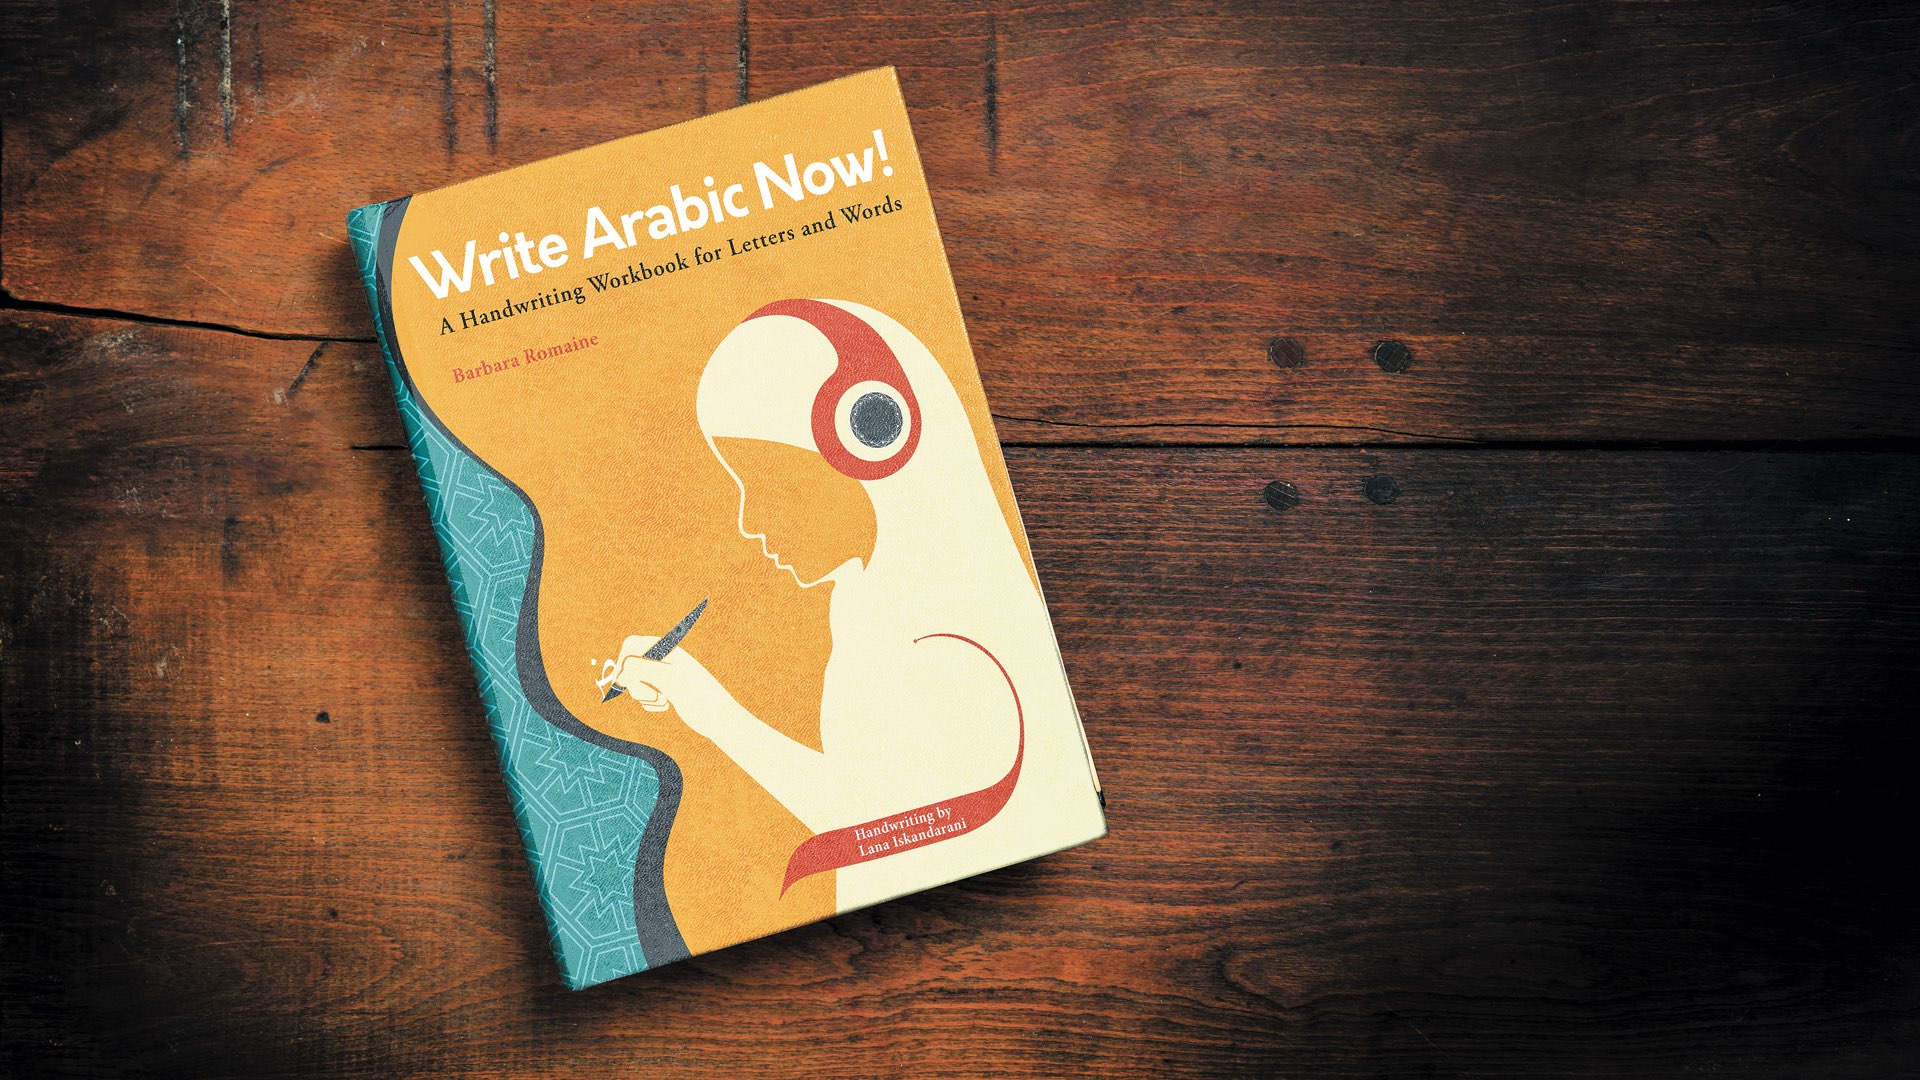 Write Arabic Now workbook cover, showing a female student with pen in hand wearing headphones over a hijab